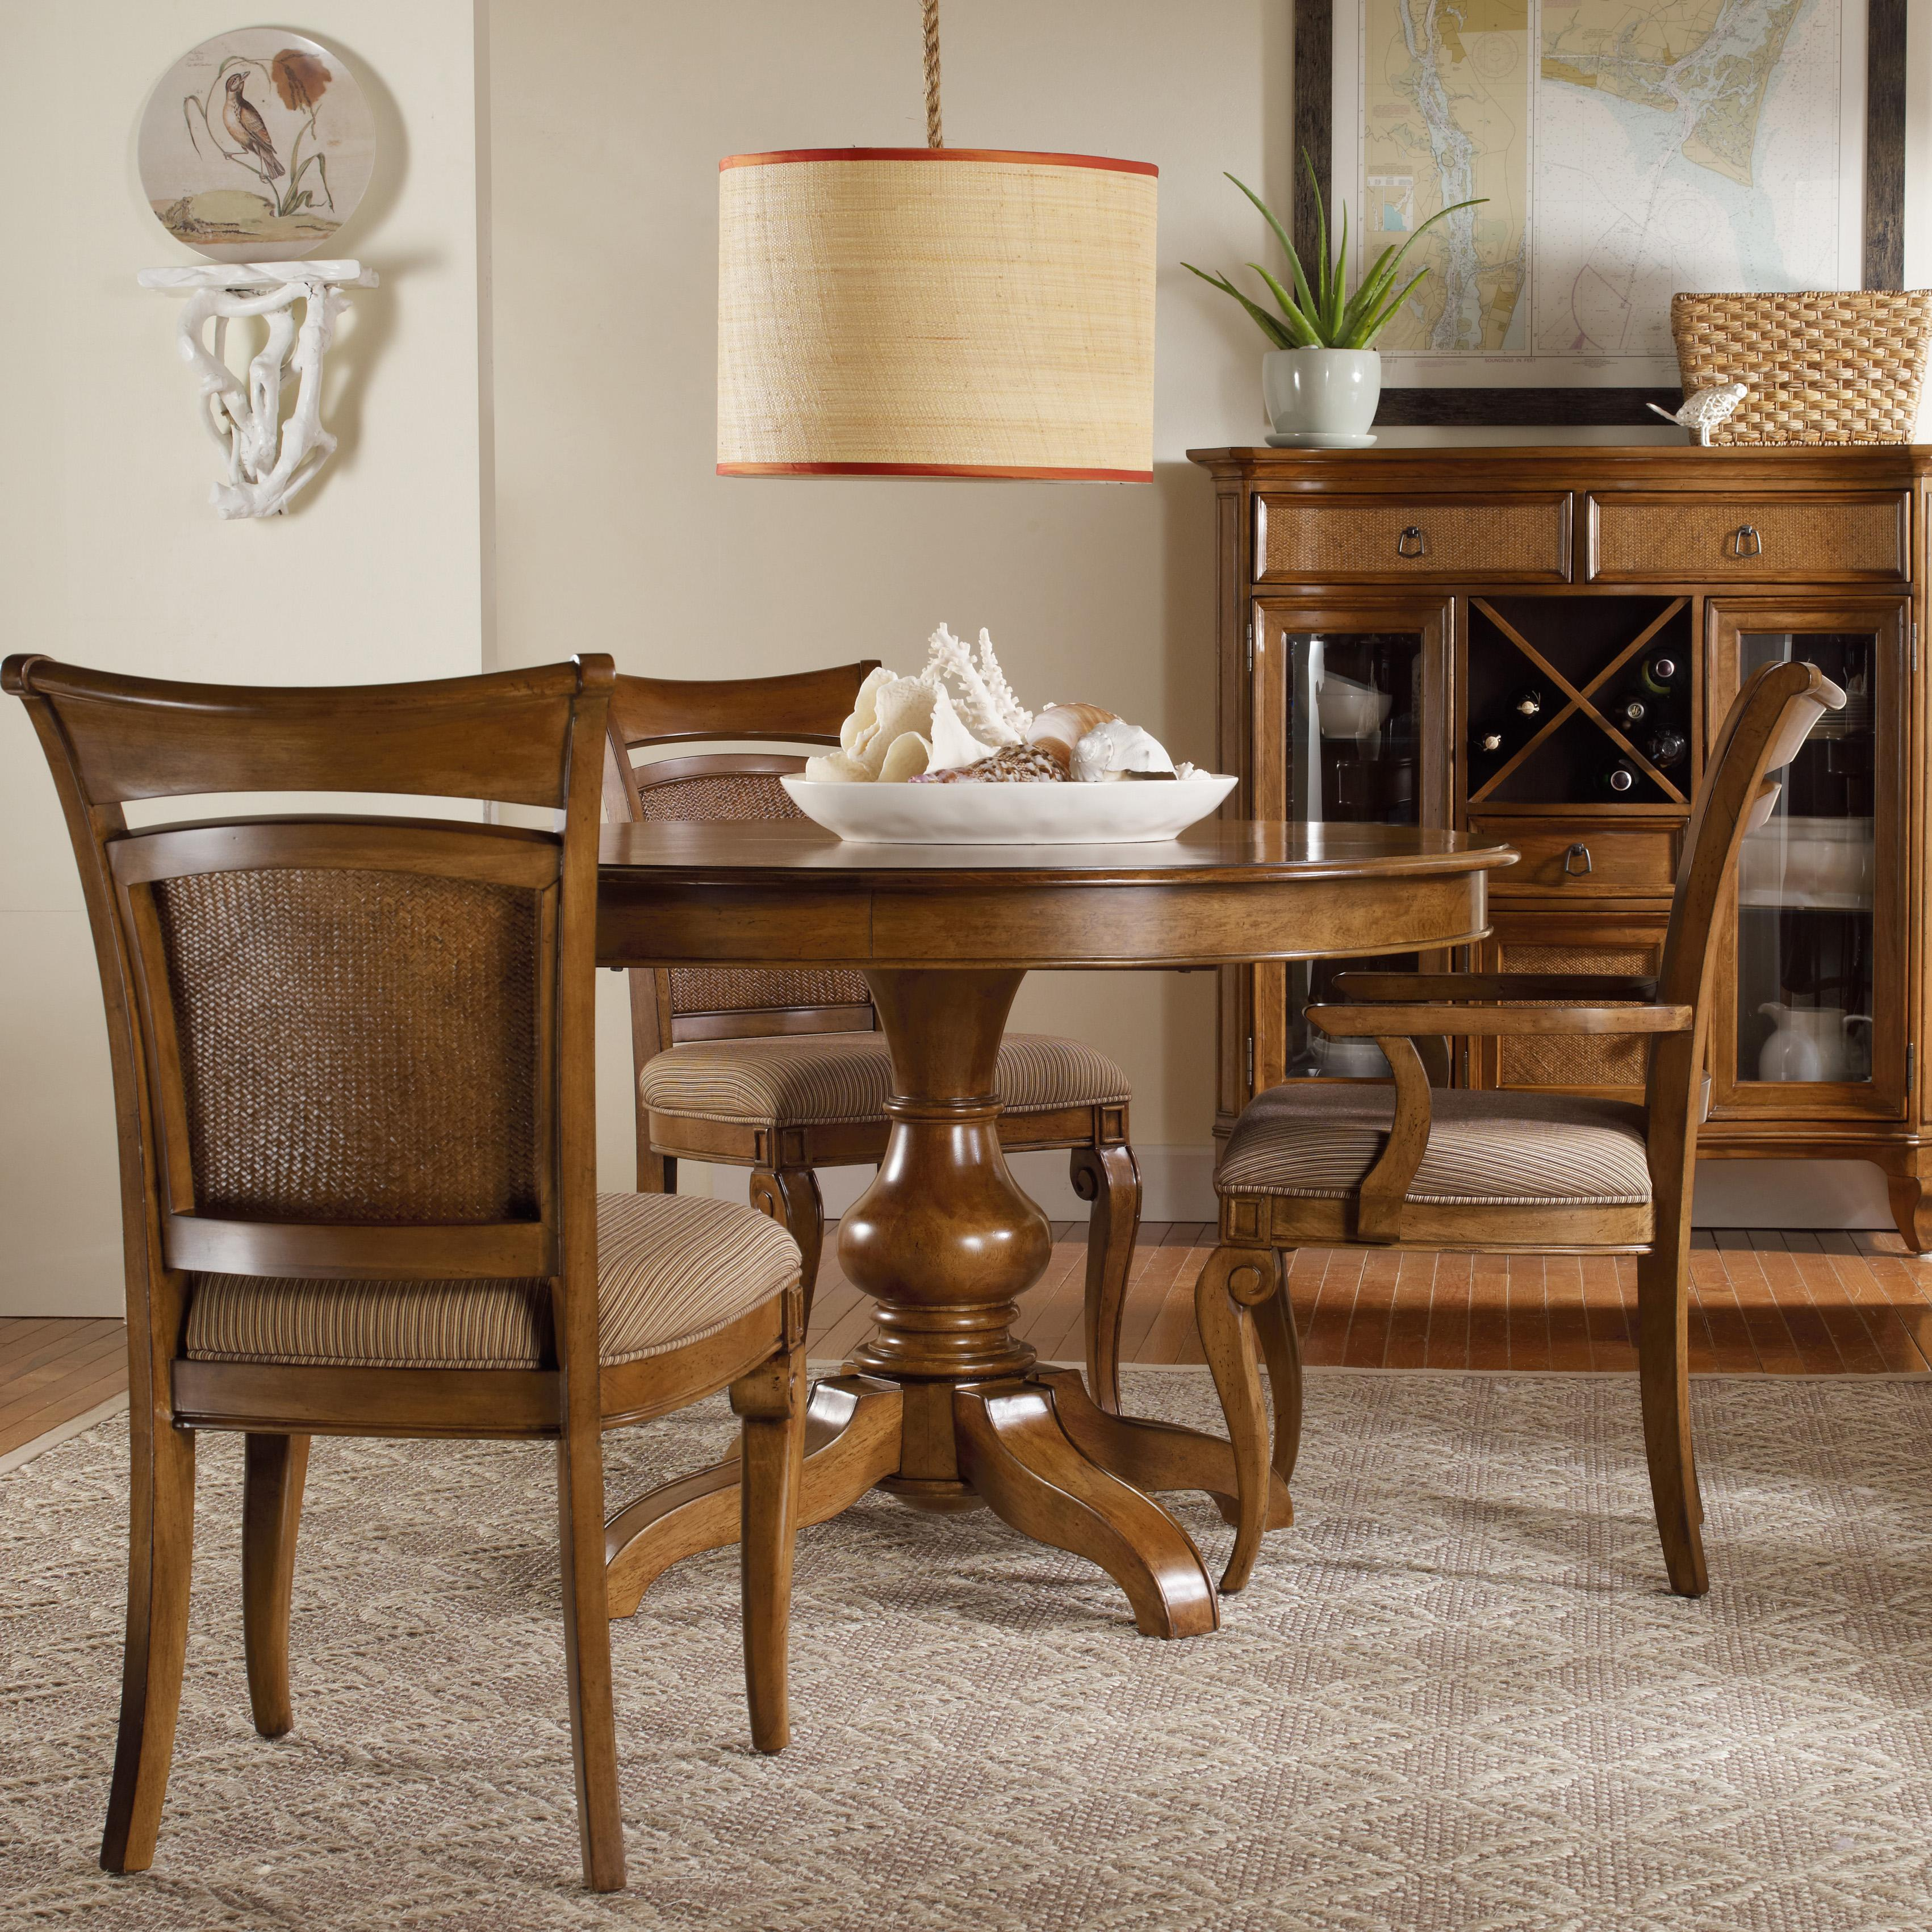 Hooker Furniture Windward Pedestal Dining Table u0026 Raffia Chairs Set - AHFA - Dining 3 Piece Set Dealer Locator & Hooker Furniture Windward Pedestal Dining Table u0026 Raffia Chairs Set ...